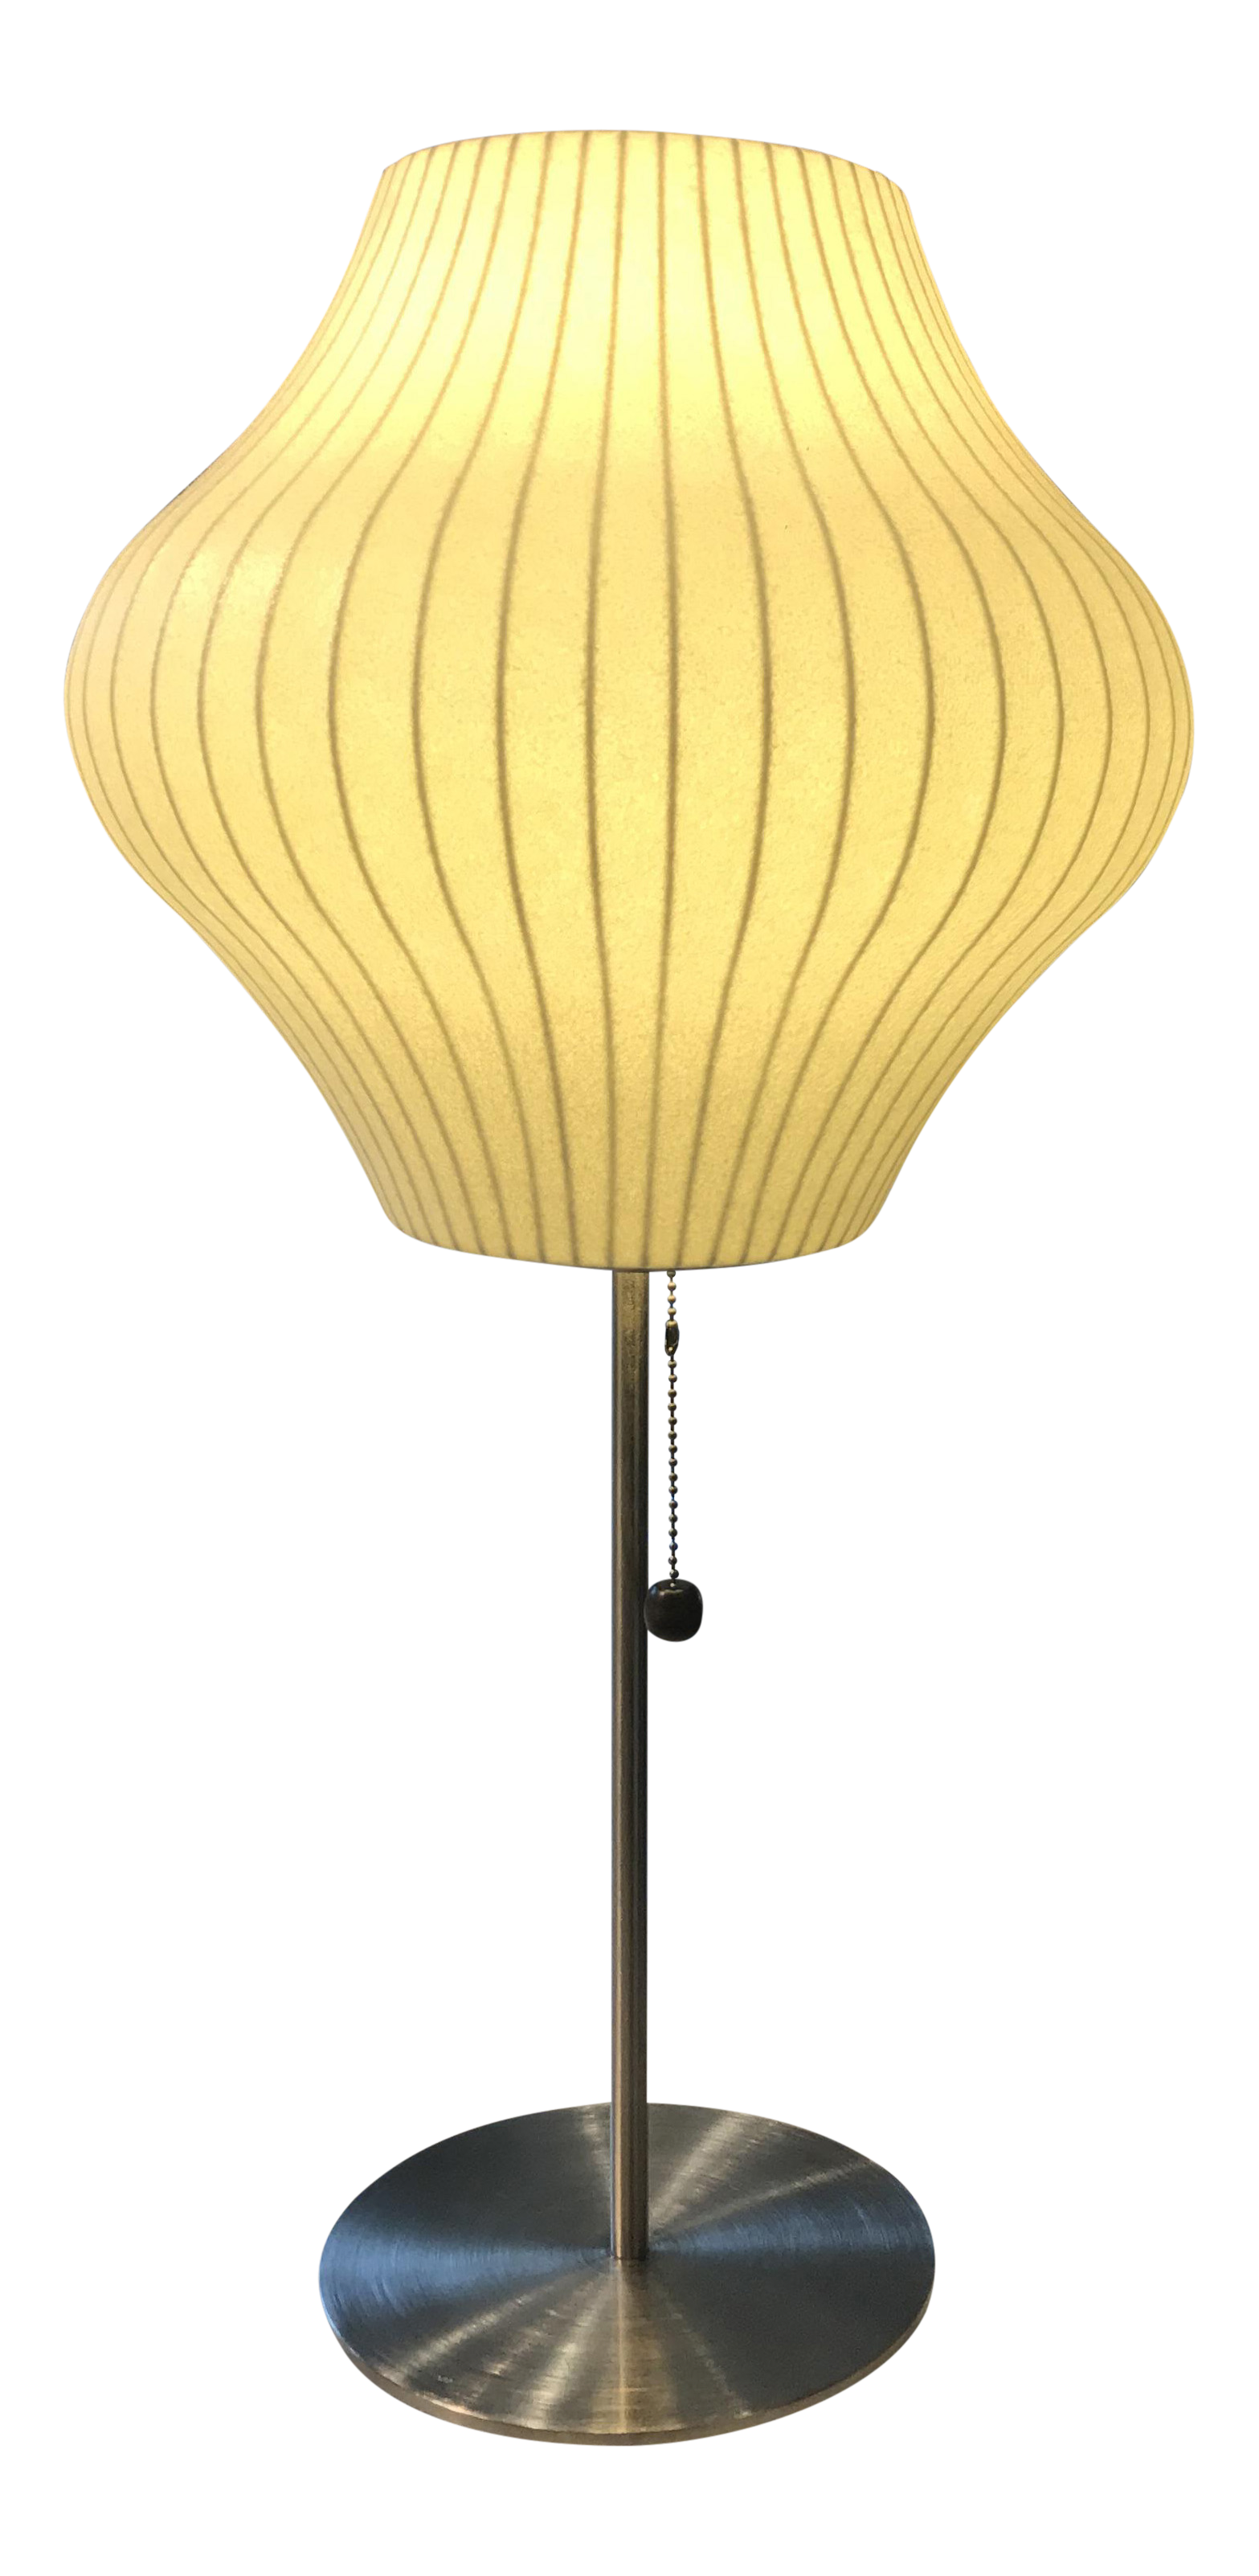 George nelson bubble table lamp chairish geotapseo Image collections